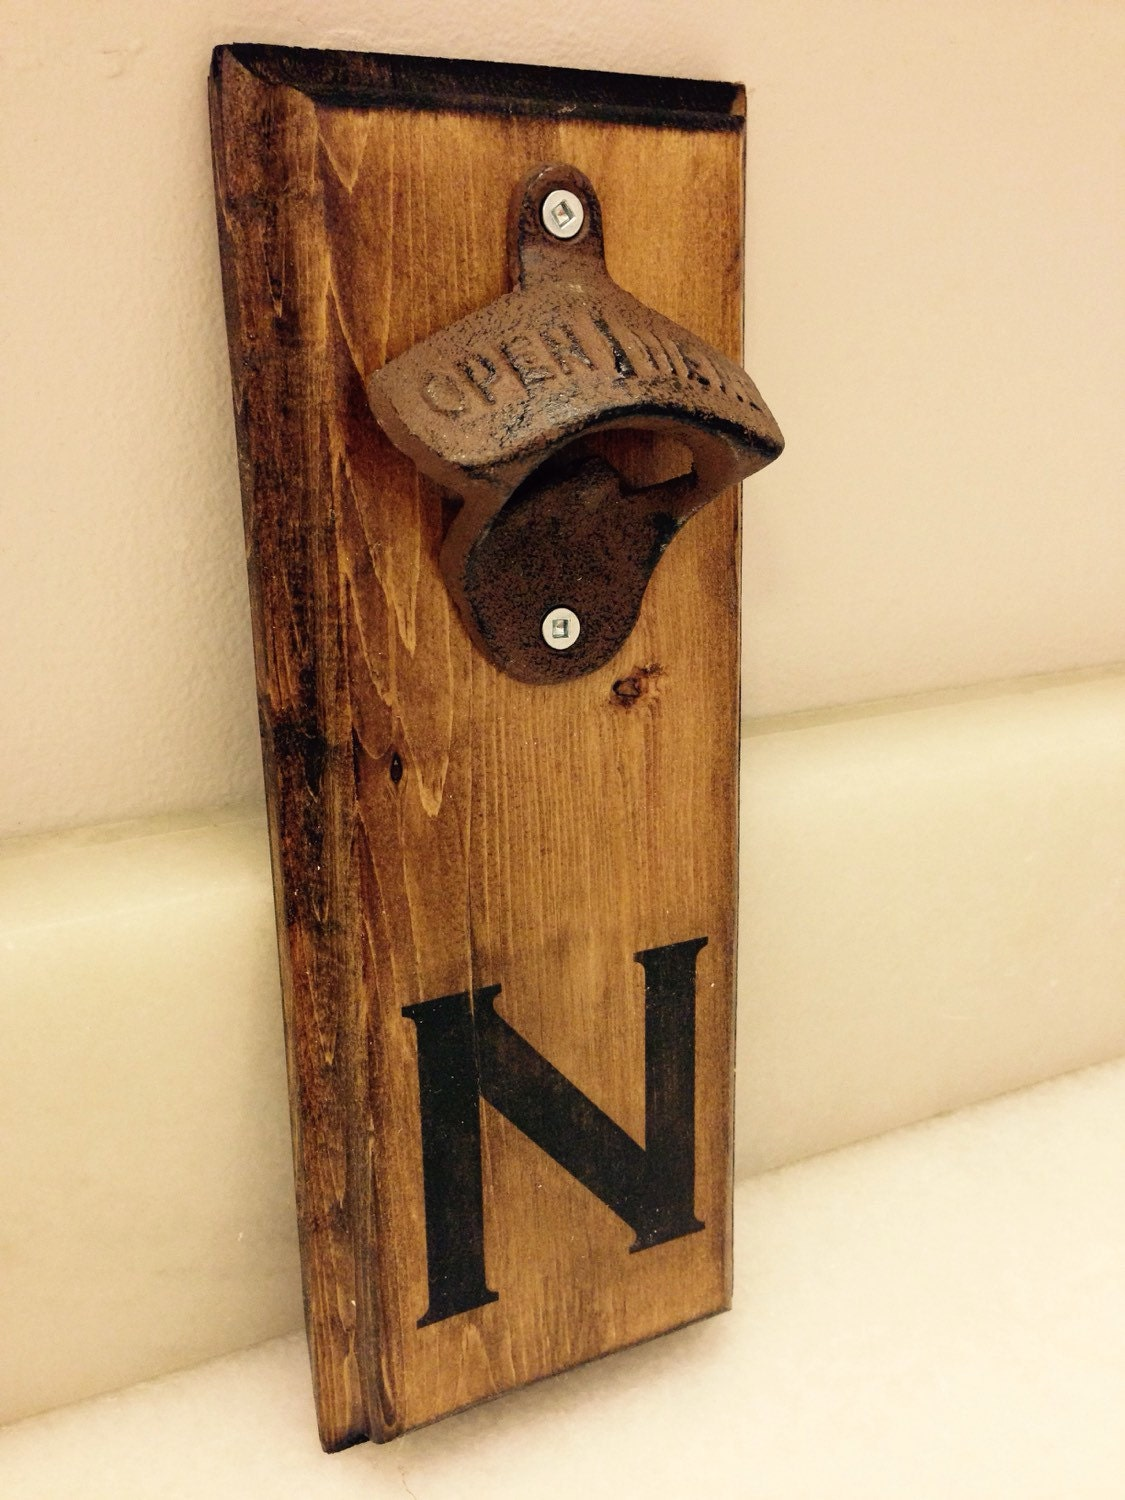 Personalized wall mount bottle opener rustic request a - Personalized wall mount bottle opener ...